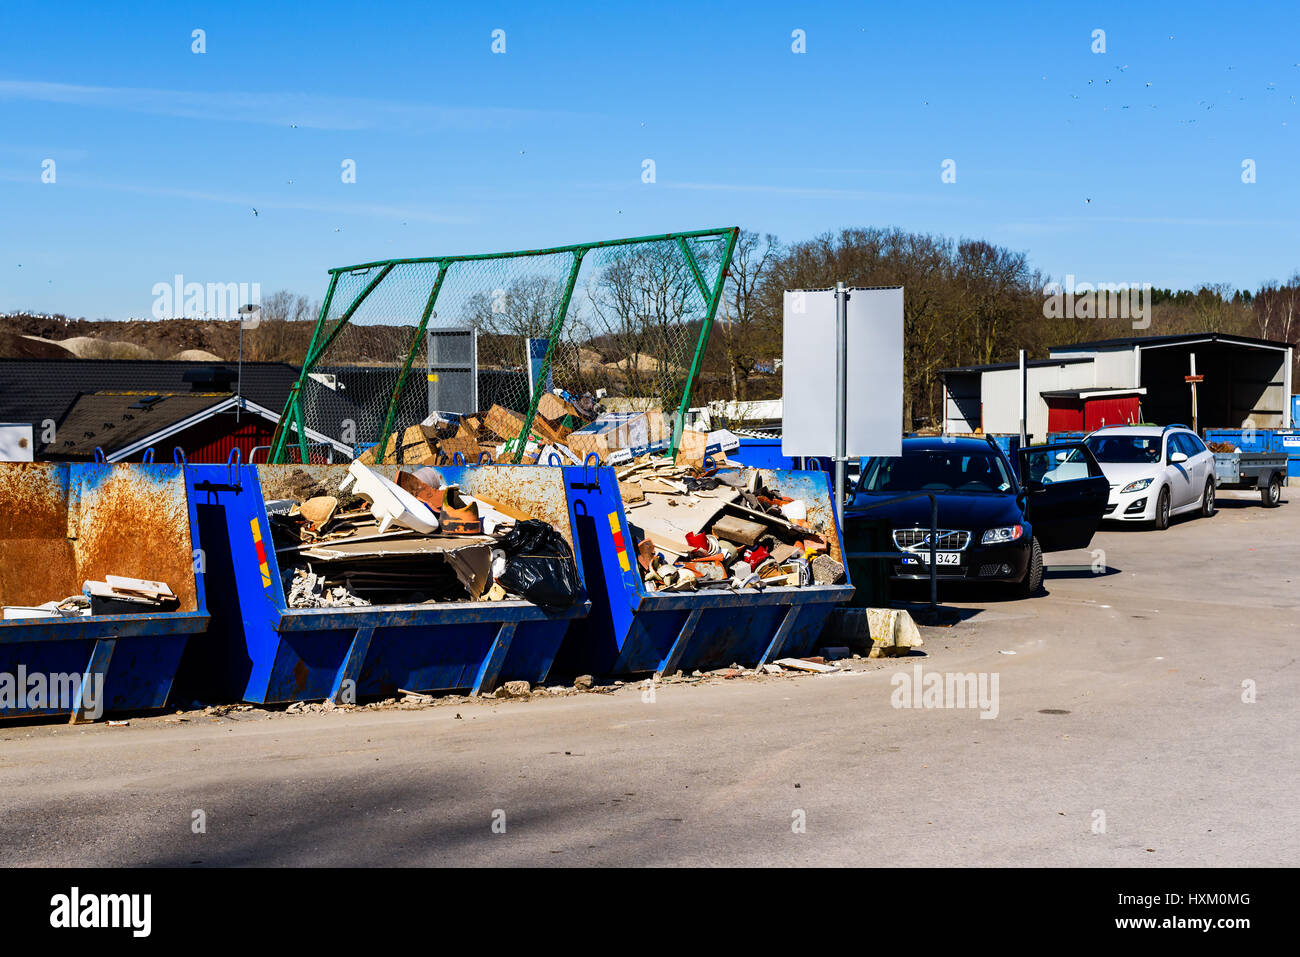 Ronneby, Sweden - March 27, 2017: Documentary of waste management ...